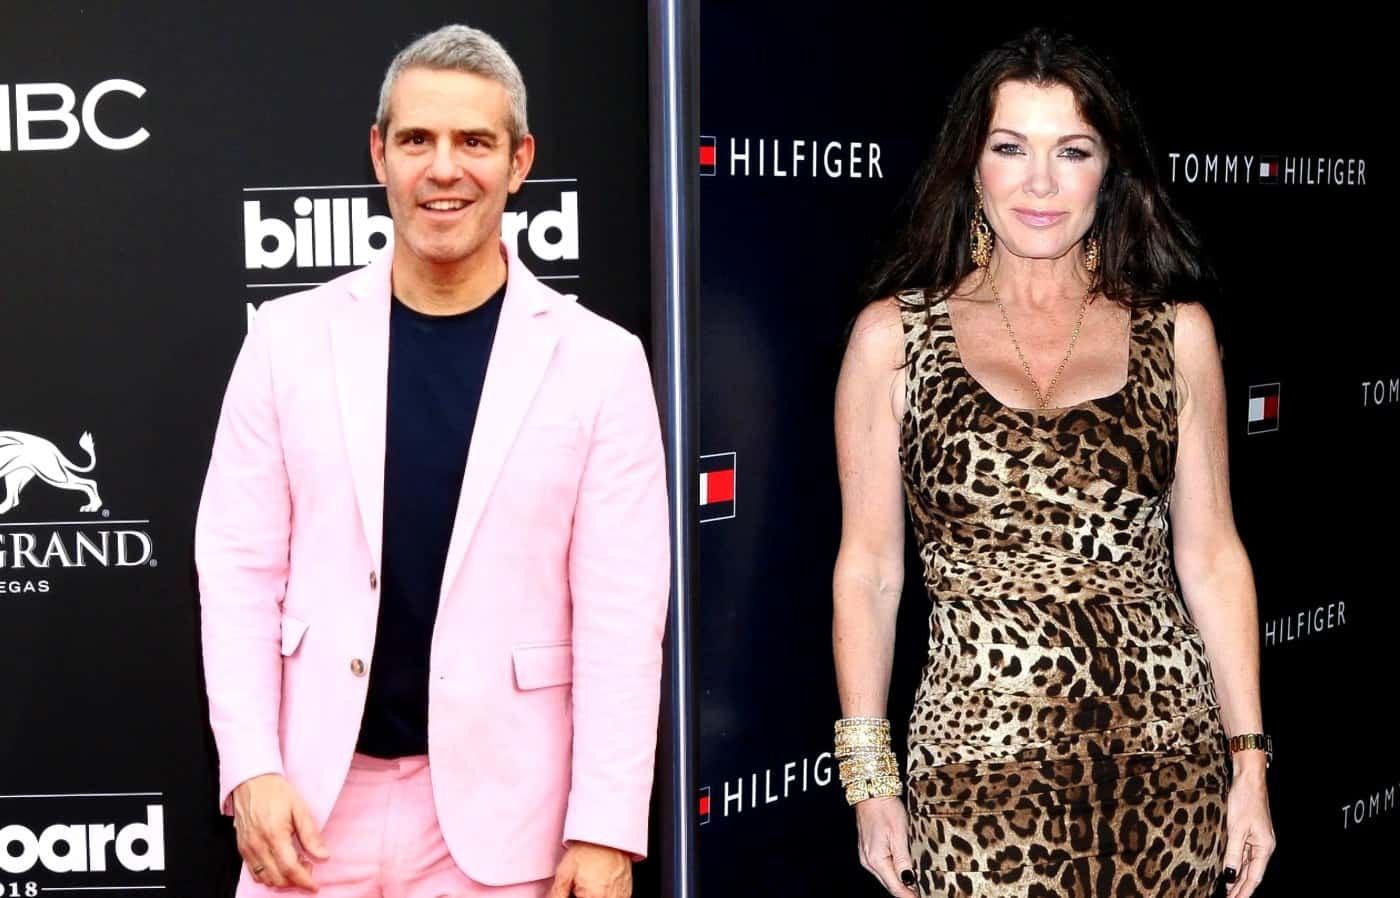 Does Andy Cohen Feel 'Disrespected' by Lisa Vanderpump After She Failed to Attend RHOBH Reunion? Plus Andy Reveals if He Filmed One-on-One Segment With Lisa